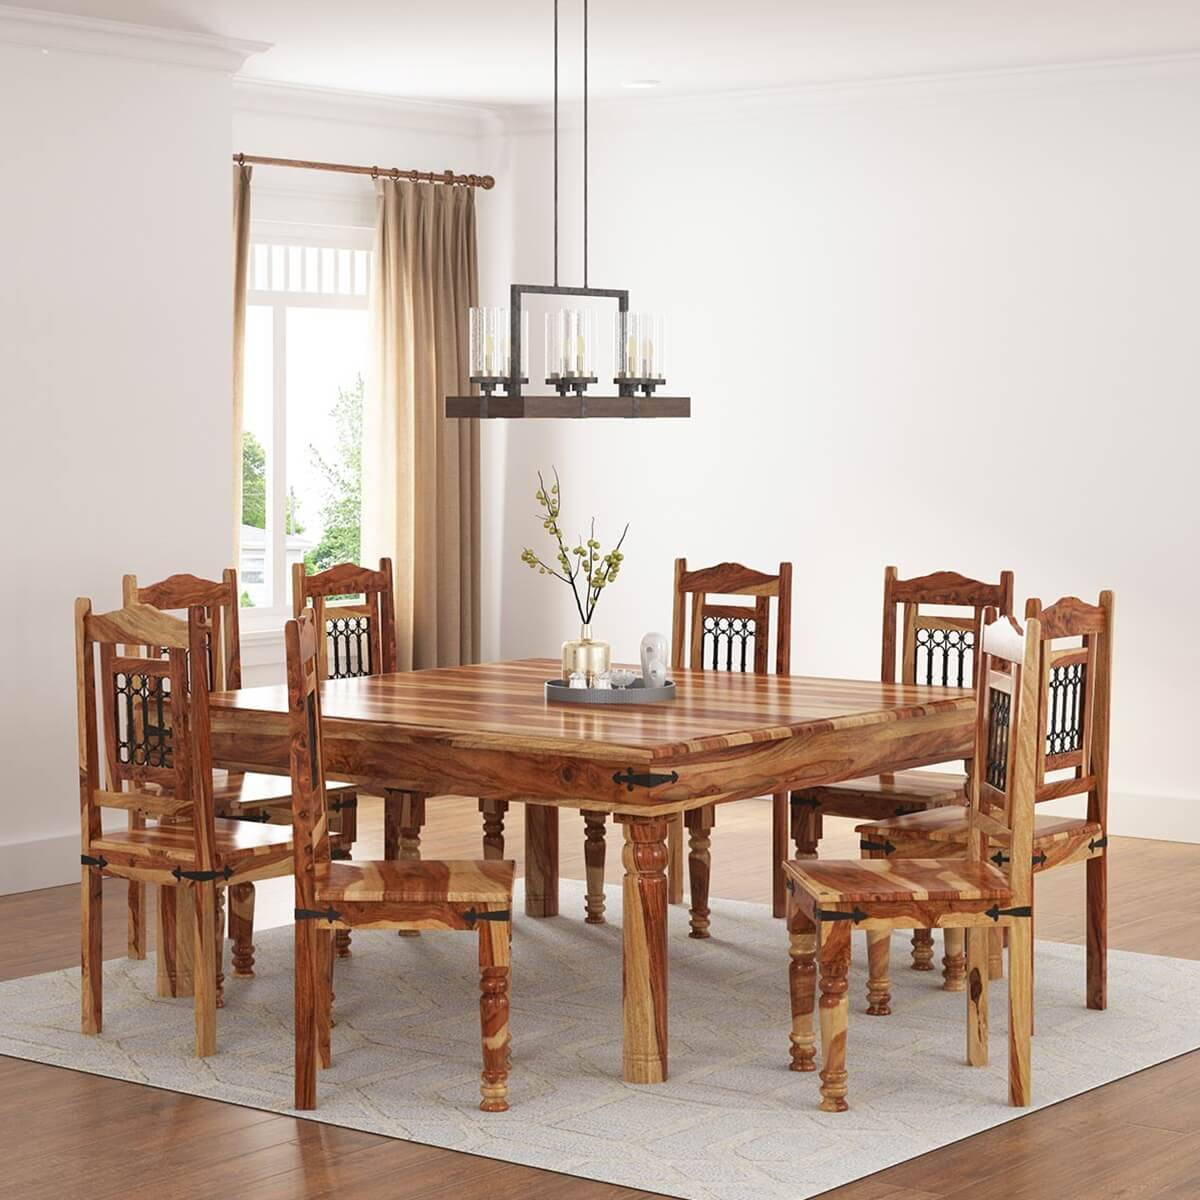 Peoria solid wood large square dining table chair set for Large dining chairs